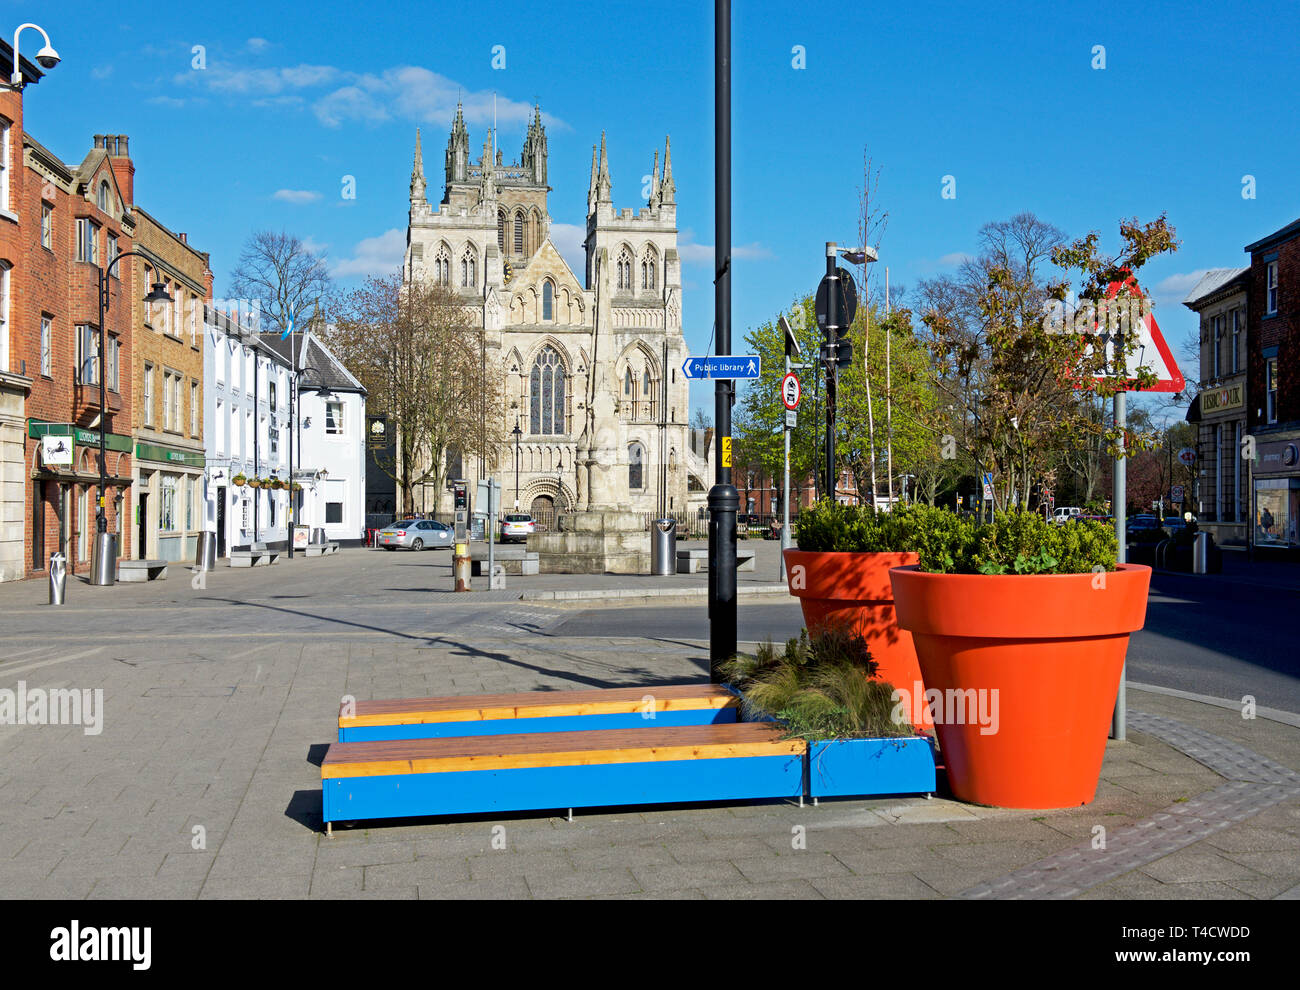 Selby Abbey, and street furniture, North Yorkshire, England UK Stock Photo